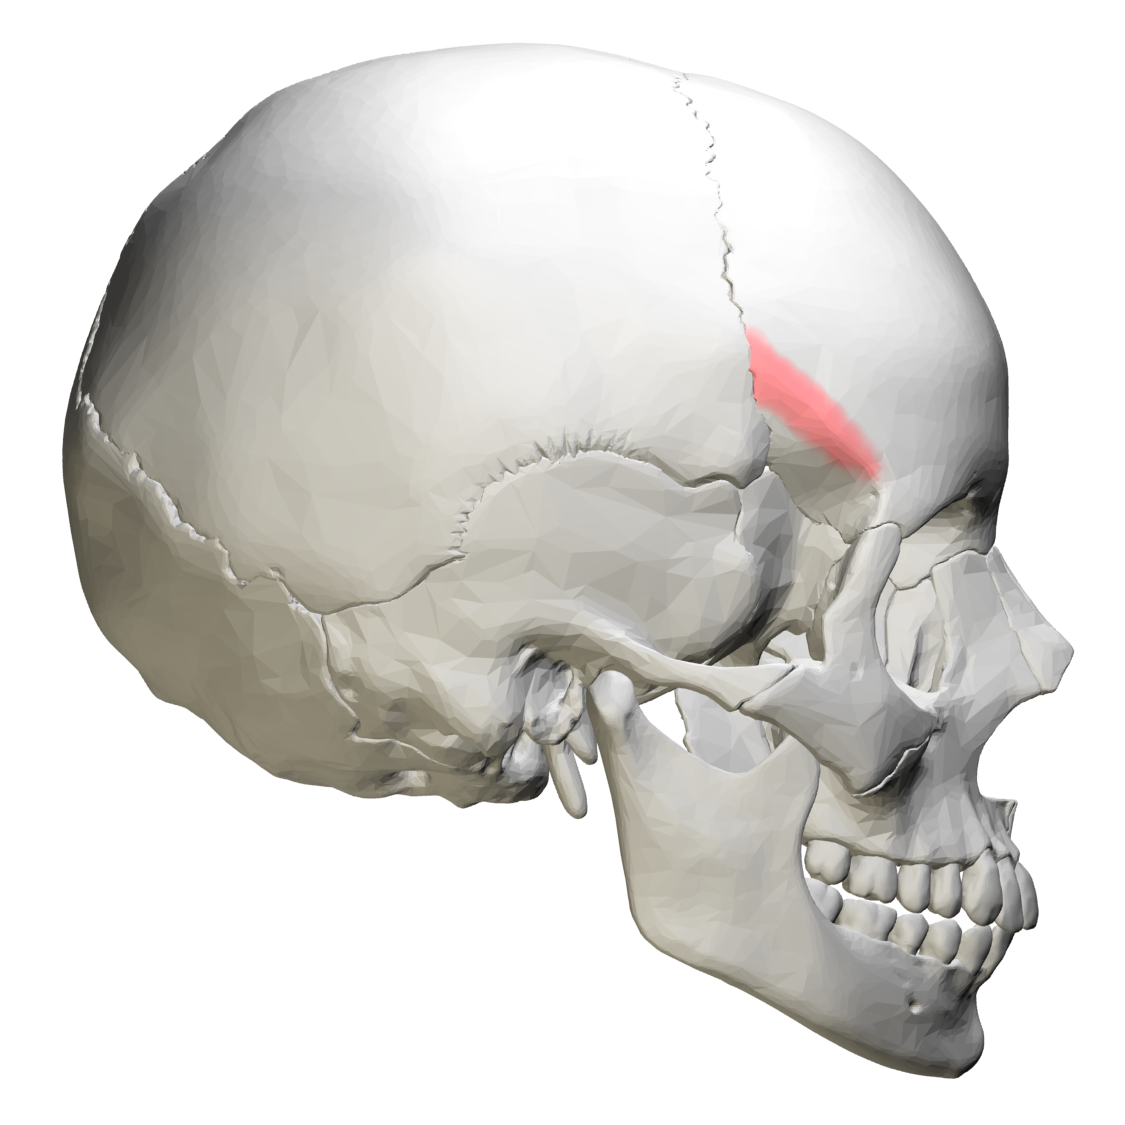 File:Temporal line of Frontal bone - lateral view.png - Wikimedia ...